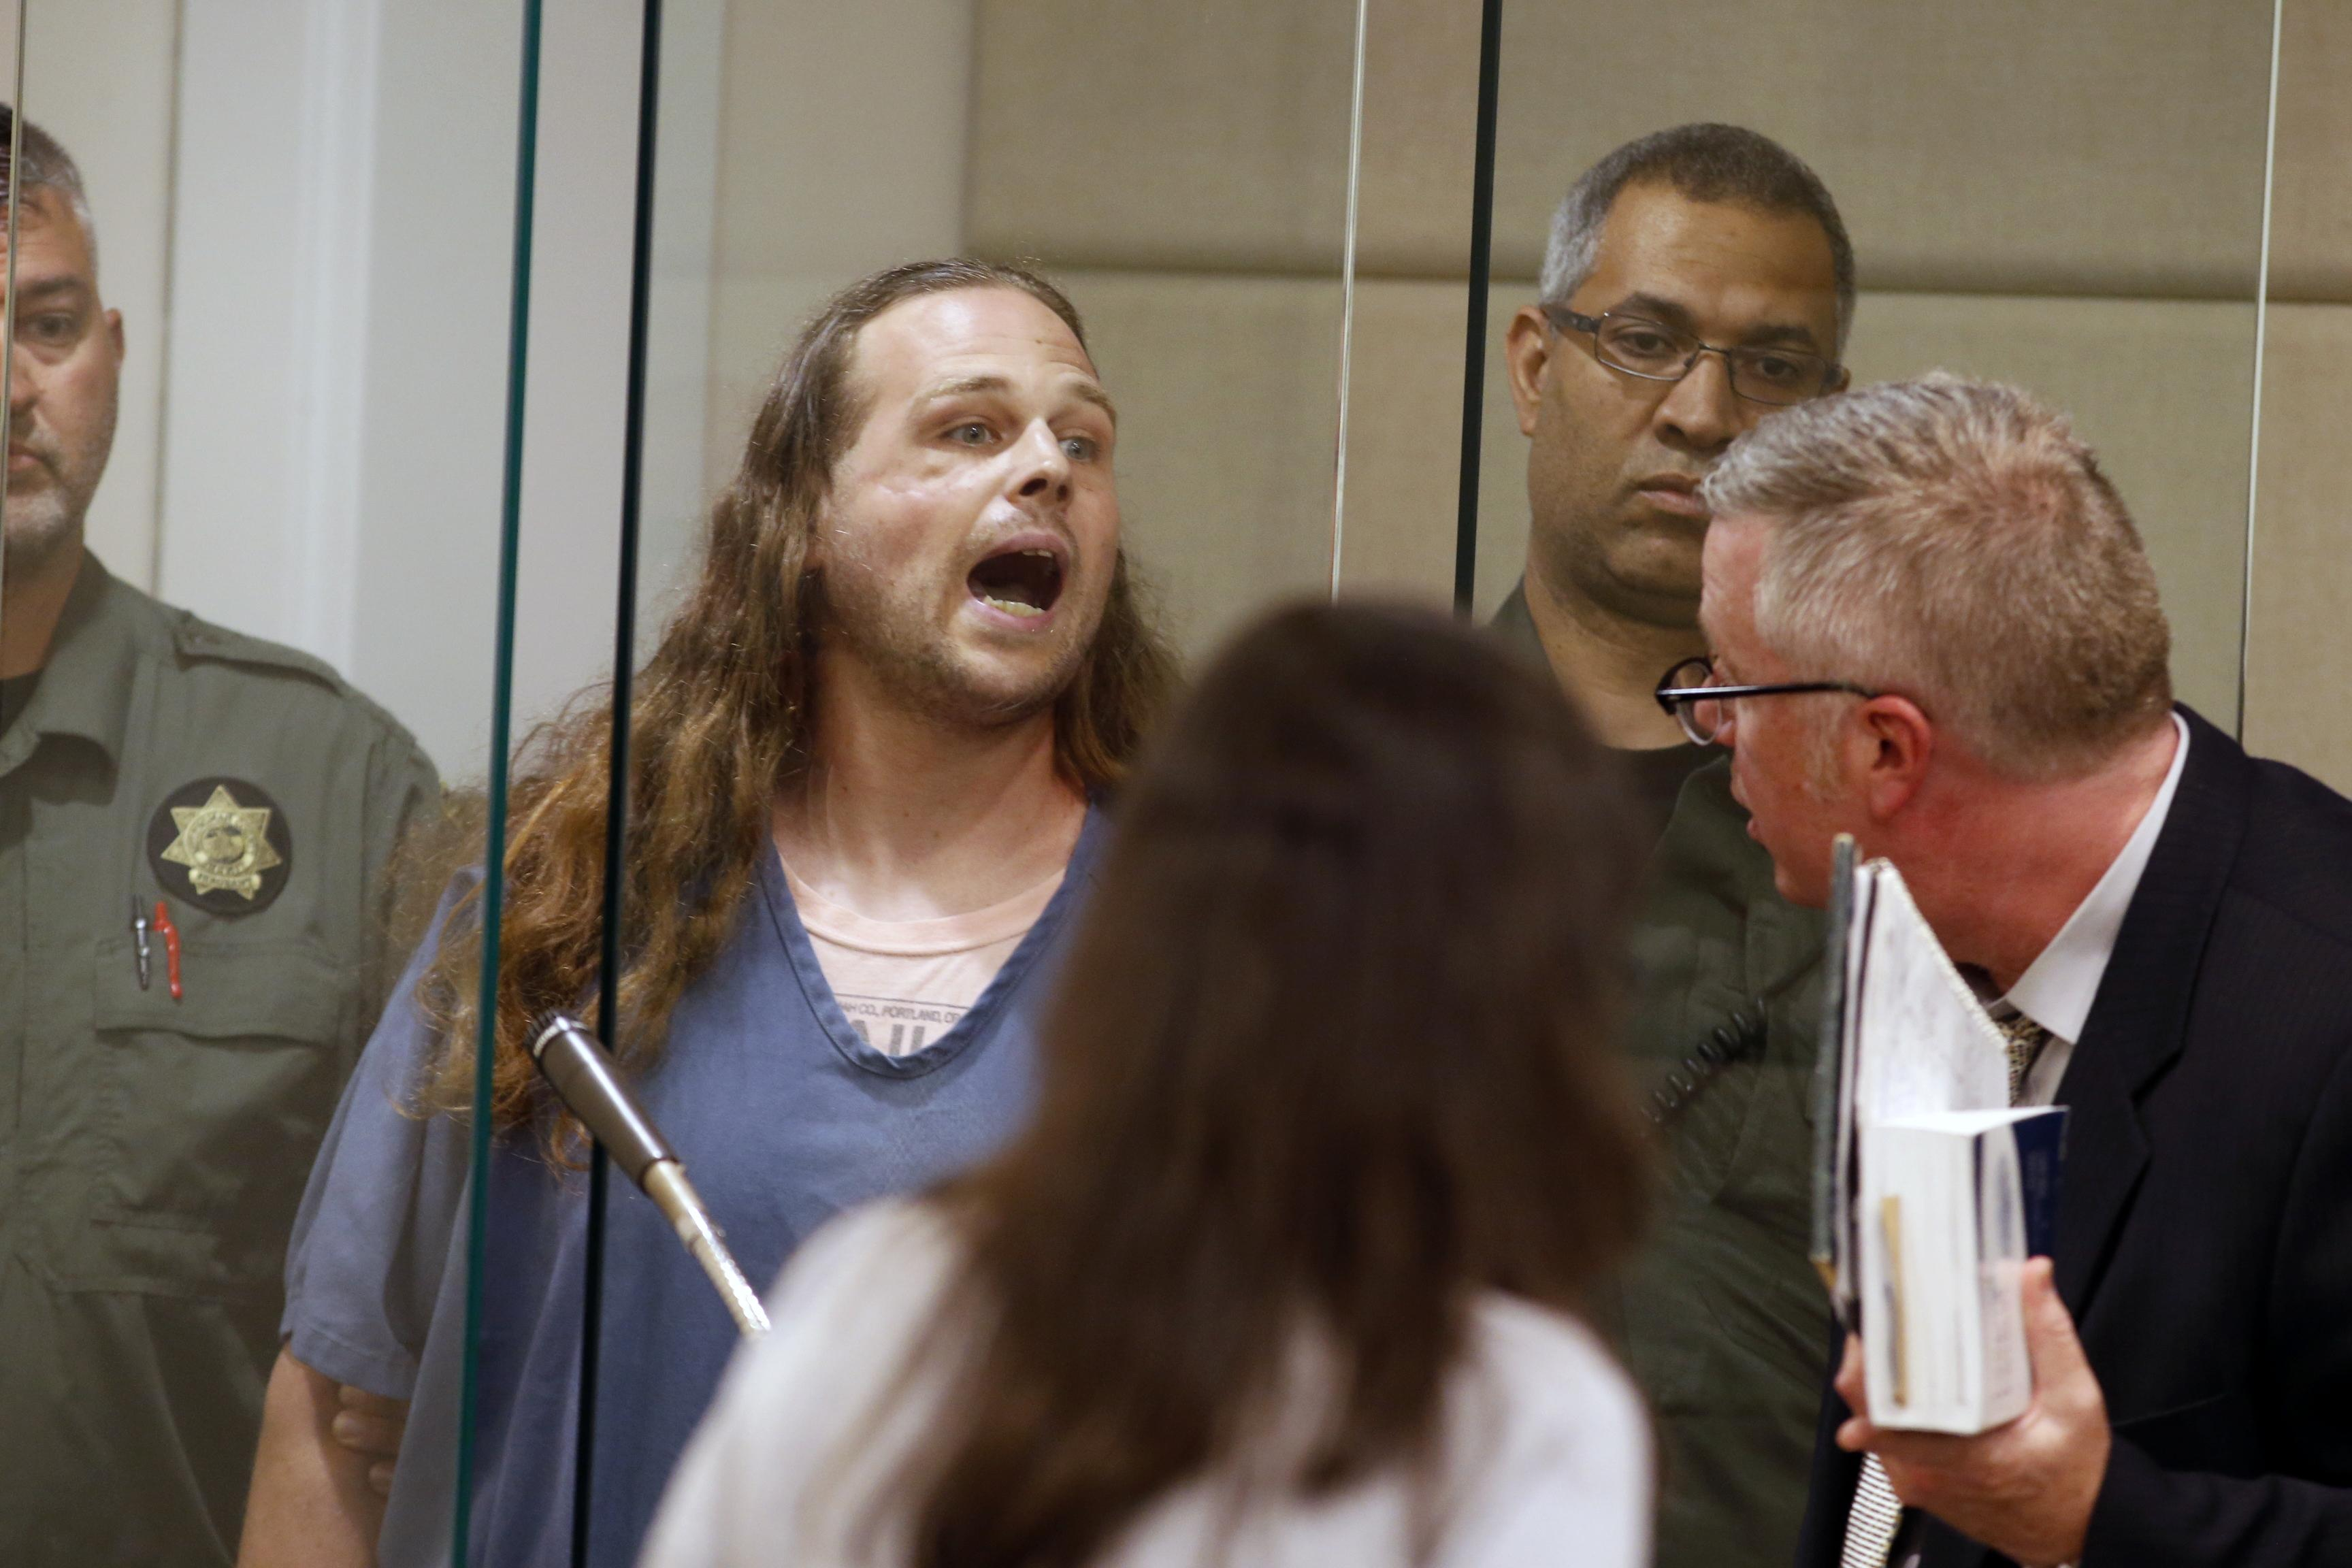 Jeremy Joseph Christian shouts as he is arraigned Tuesday in Multnomah County Circuit Court in Portland. [Beth Nakamura/The Oregonian via AP, Pool]